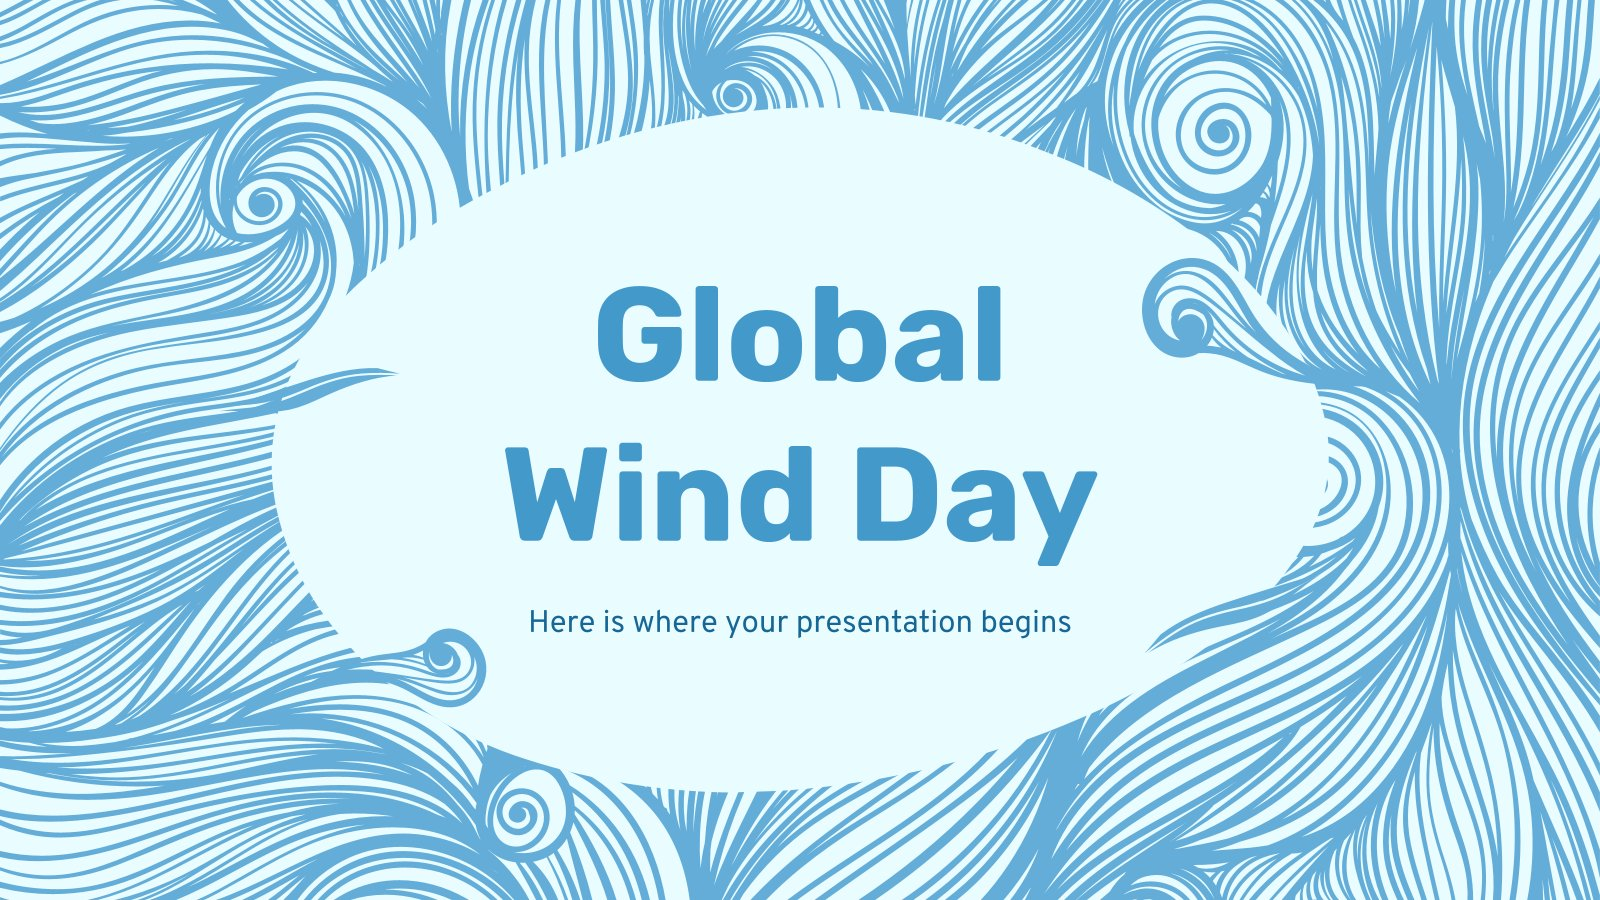 Global Wind Day presentation template